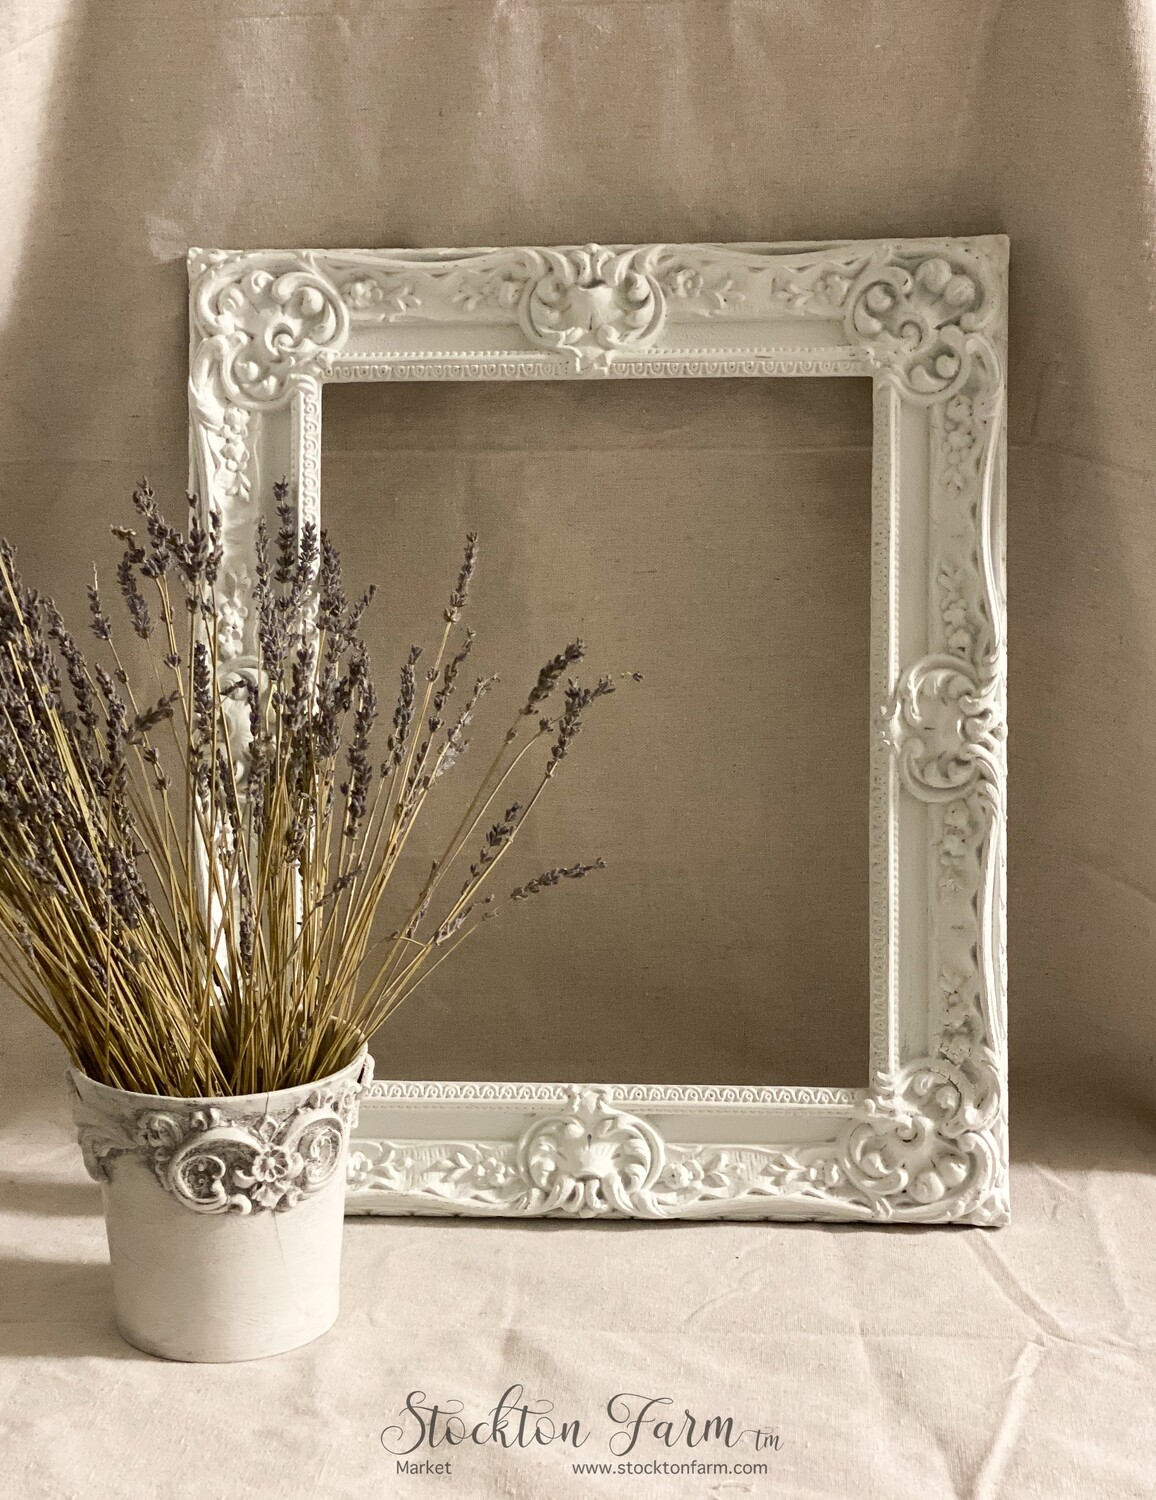 French Country Inspired White 11 x 14 Decor Frame